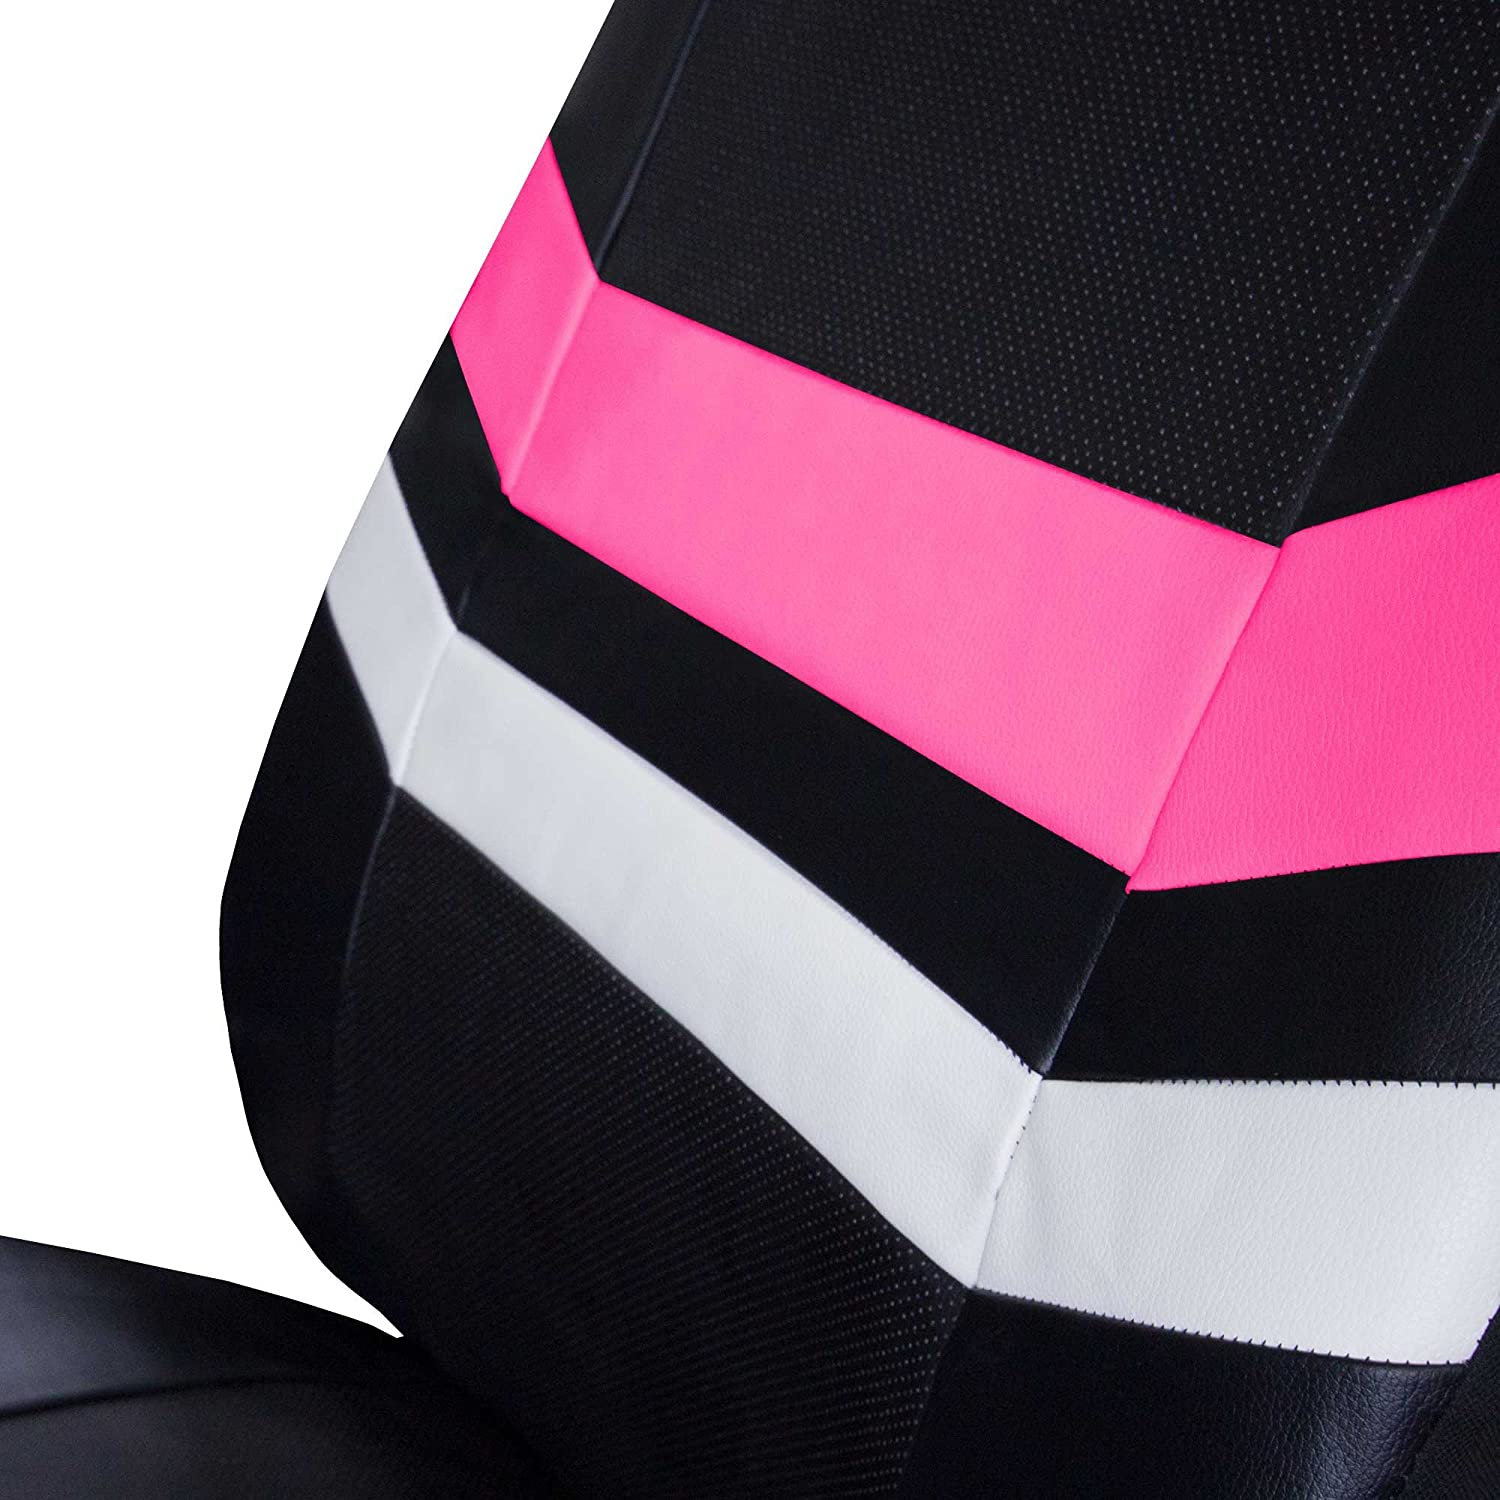 FH Group Leather Full Set Seat Covers Pink Airbag Safe PU006PINK115 /& Split Bench Ready